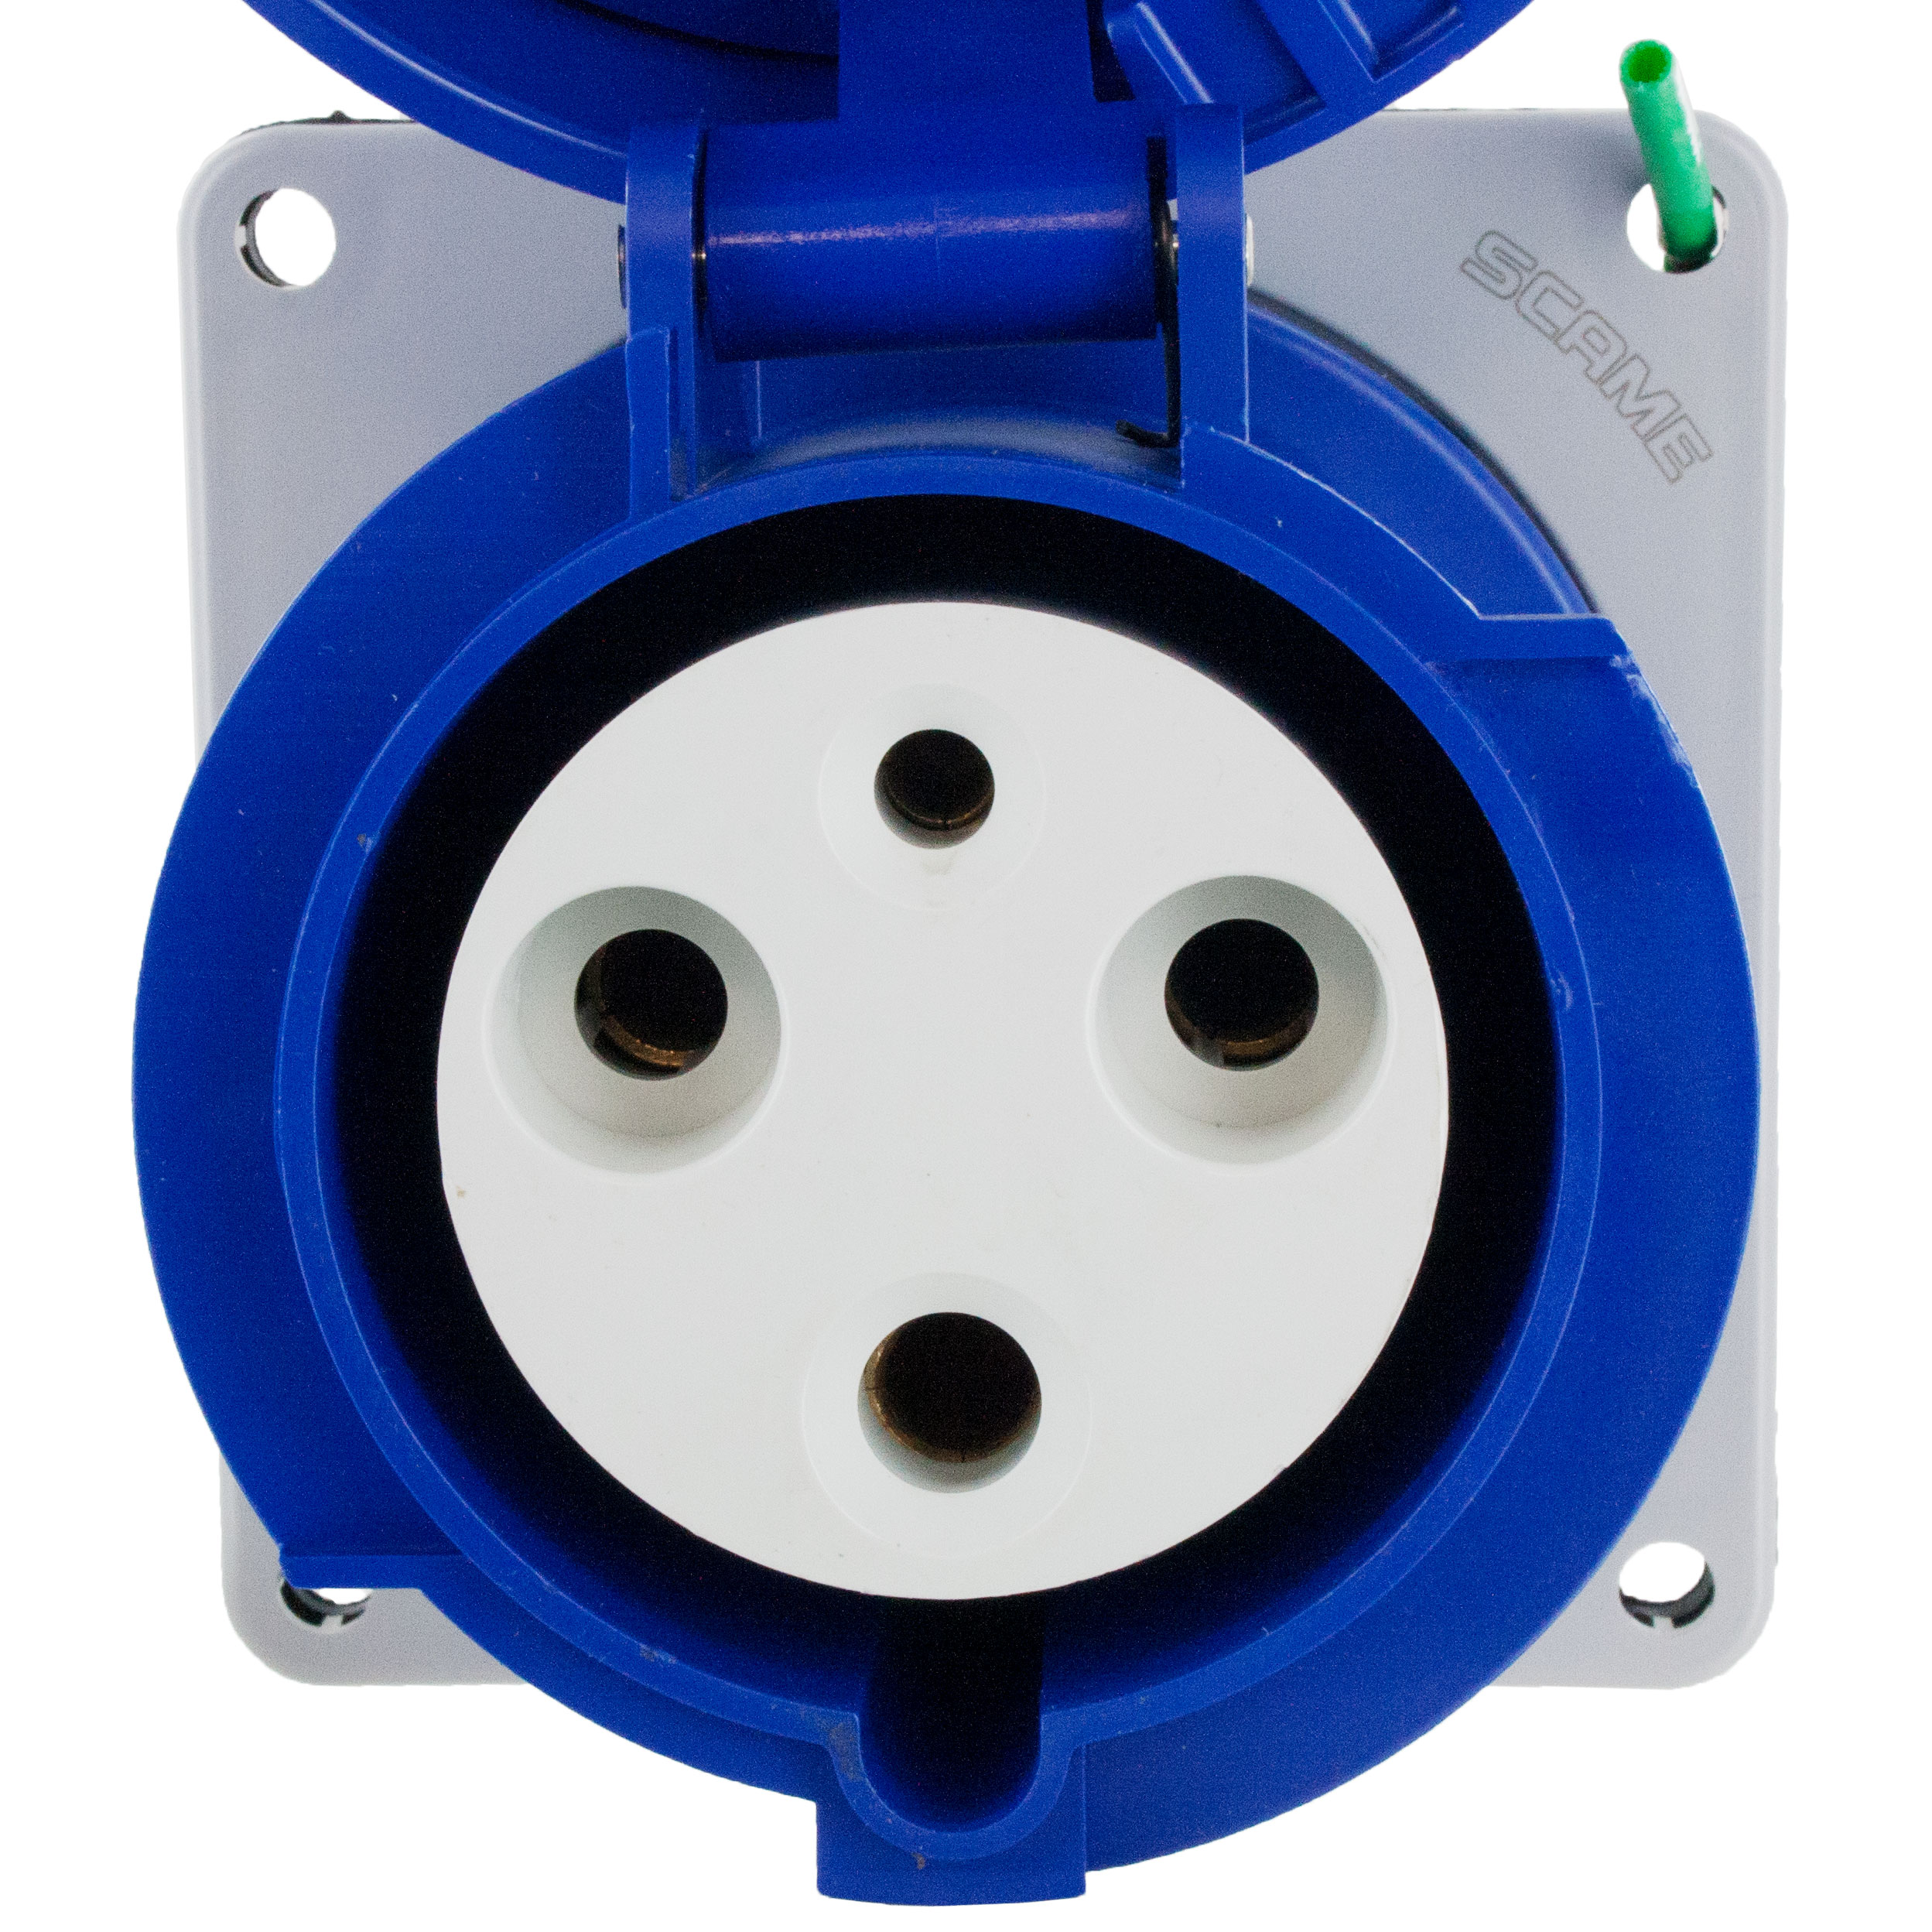 360r6w Pin And Sleeve Receptacle 60 Amp 2 Pole 3 Wire Elecdirect Wiring Gang Recepitacle Youtube